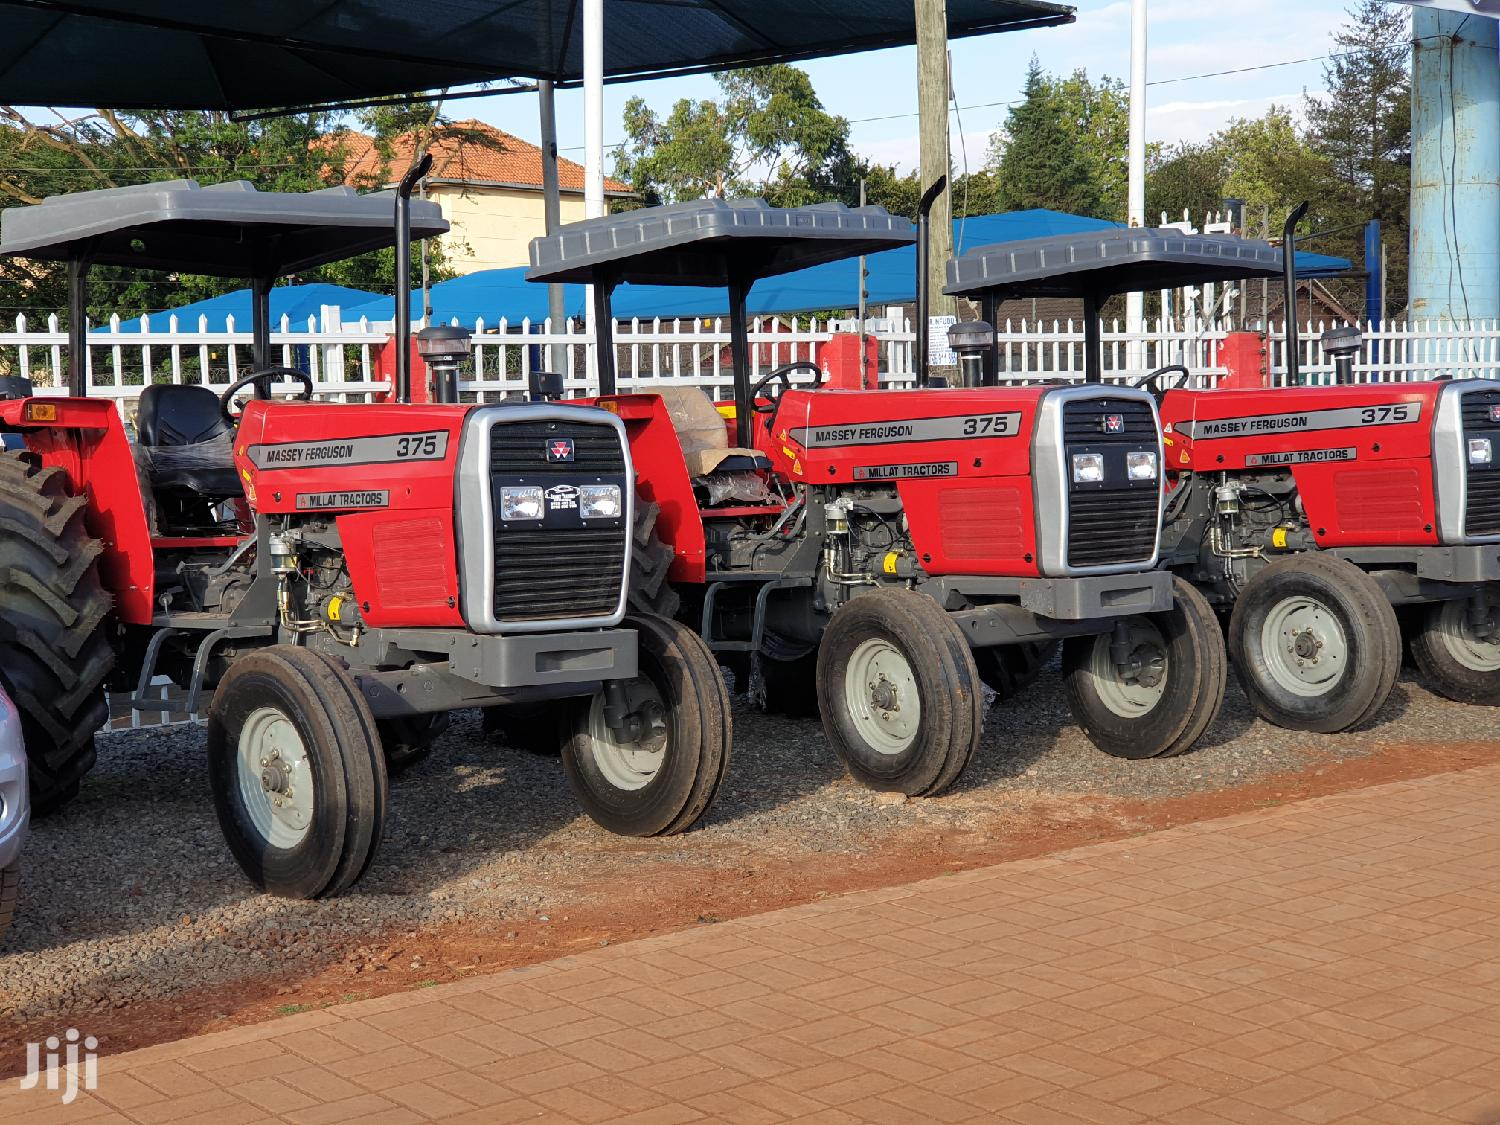 Marssey Ferguson MF 375,385 2WD/4WD And MF 240 2020 Red For Sale